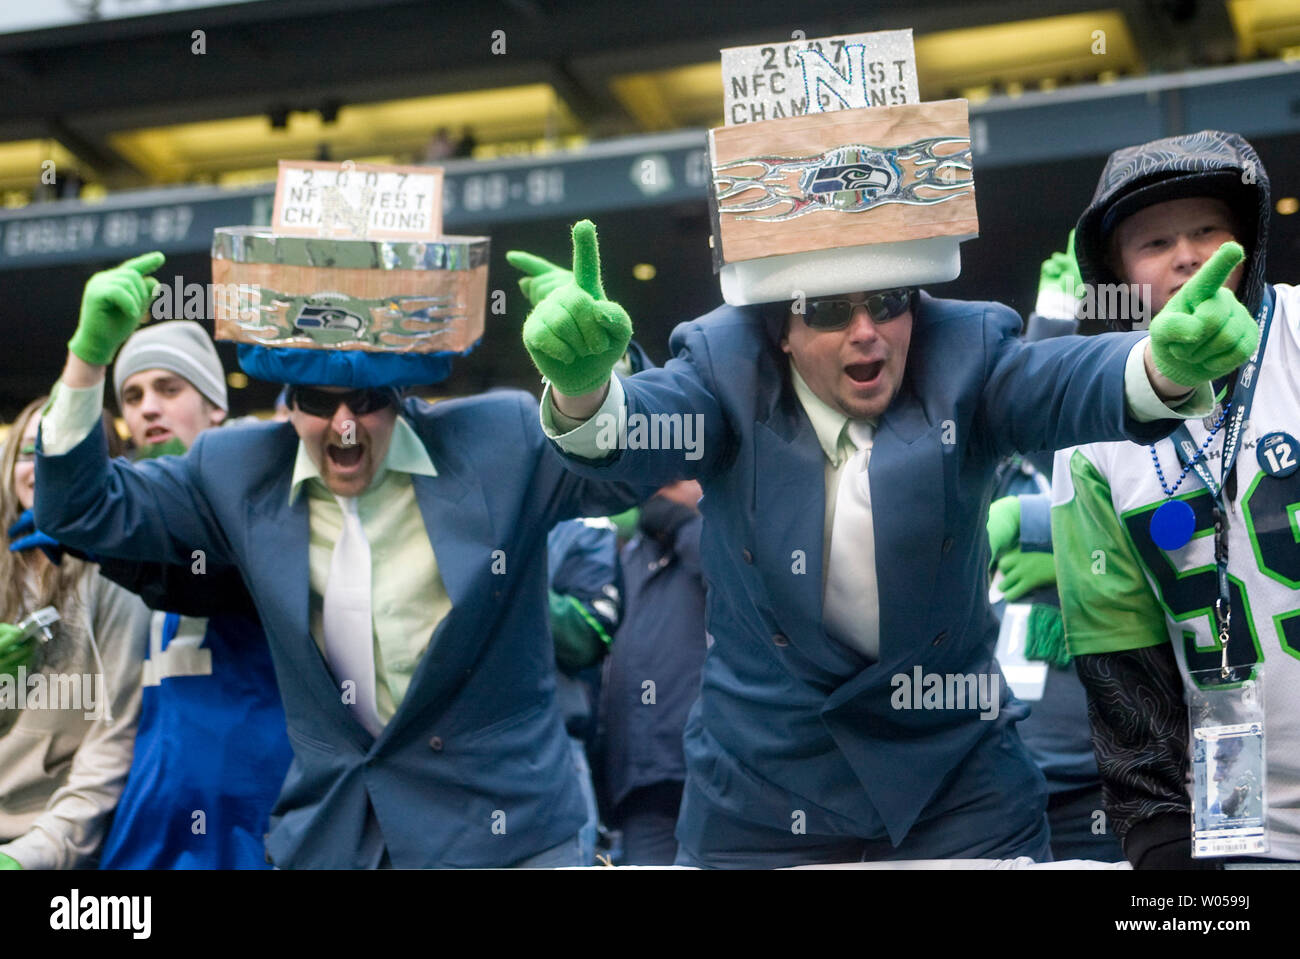 Seattle Seahawks fans Jason Wright (L ) and Kevin Martin (R) wear NFC Championship hats as the Seahawks beat the Arizona Cardinals 42-21 at Qwest Field in Seattle on December 9, 2007 to earn their fifth straight Western Divison Championships. (UPI Photo/Jim Bryant). - Stock Image